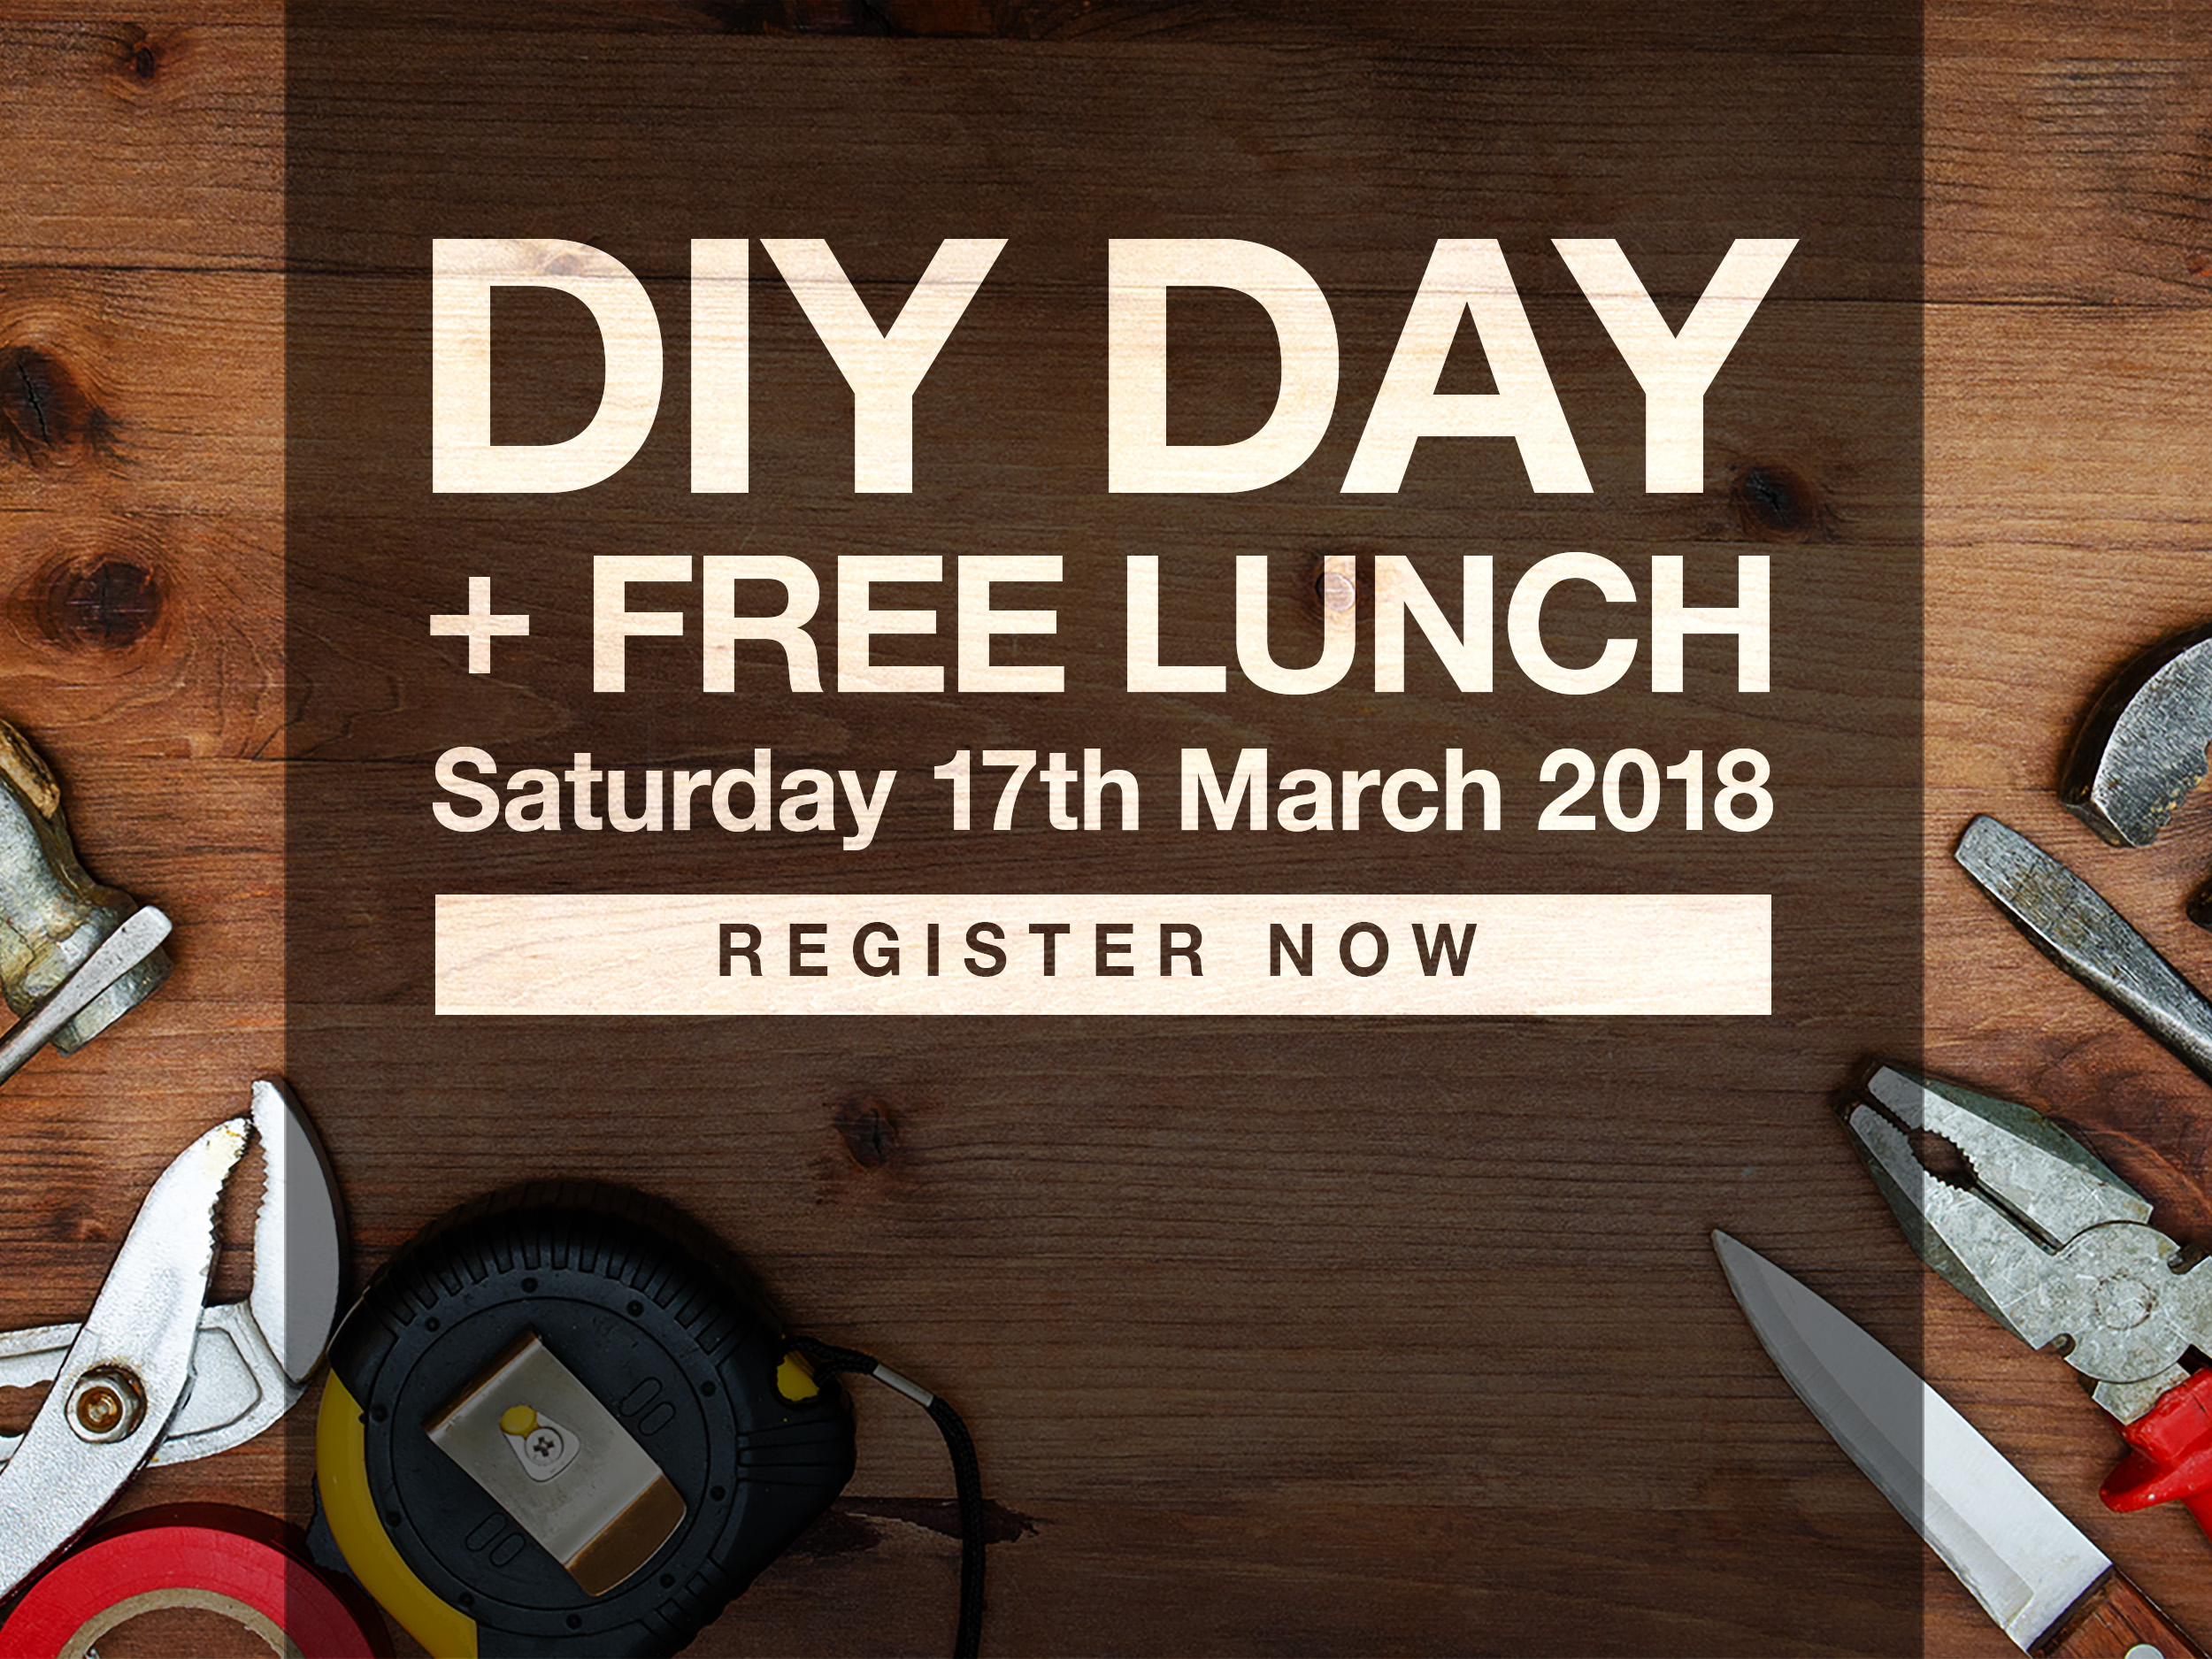 DIY DAY_Website_2500x1875.jpg